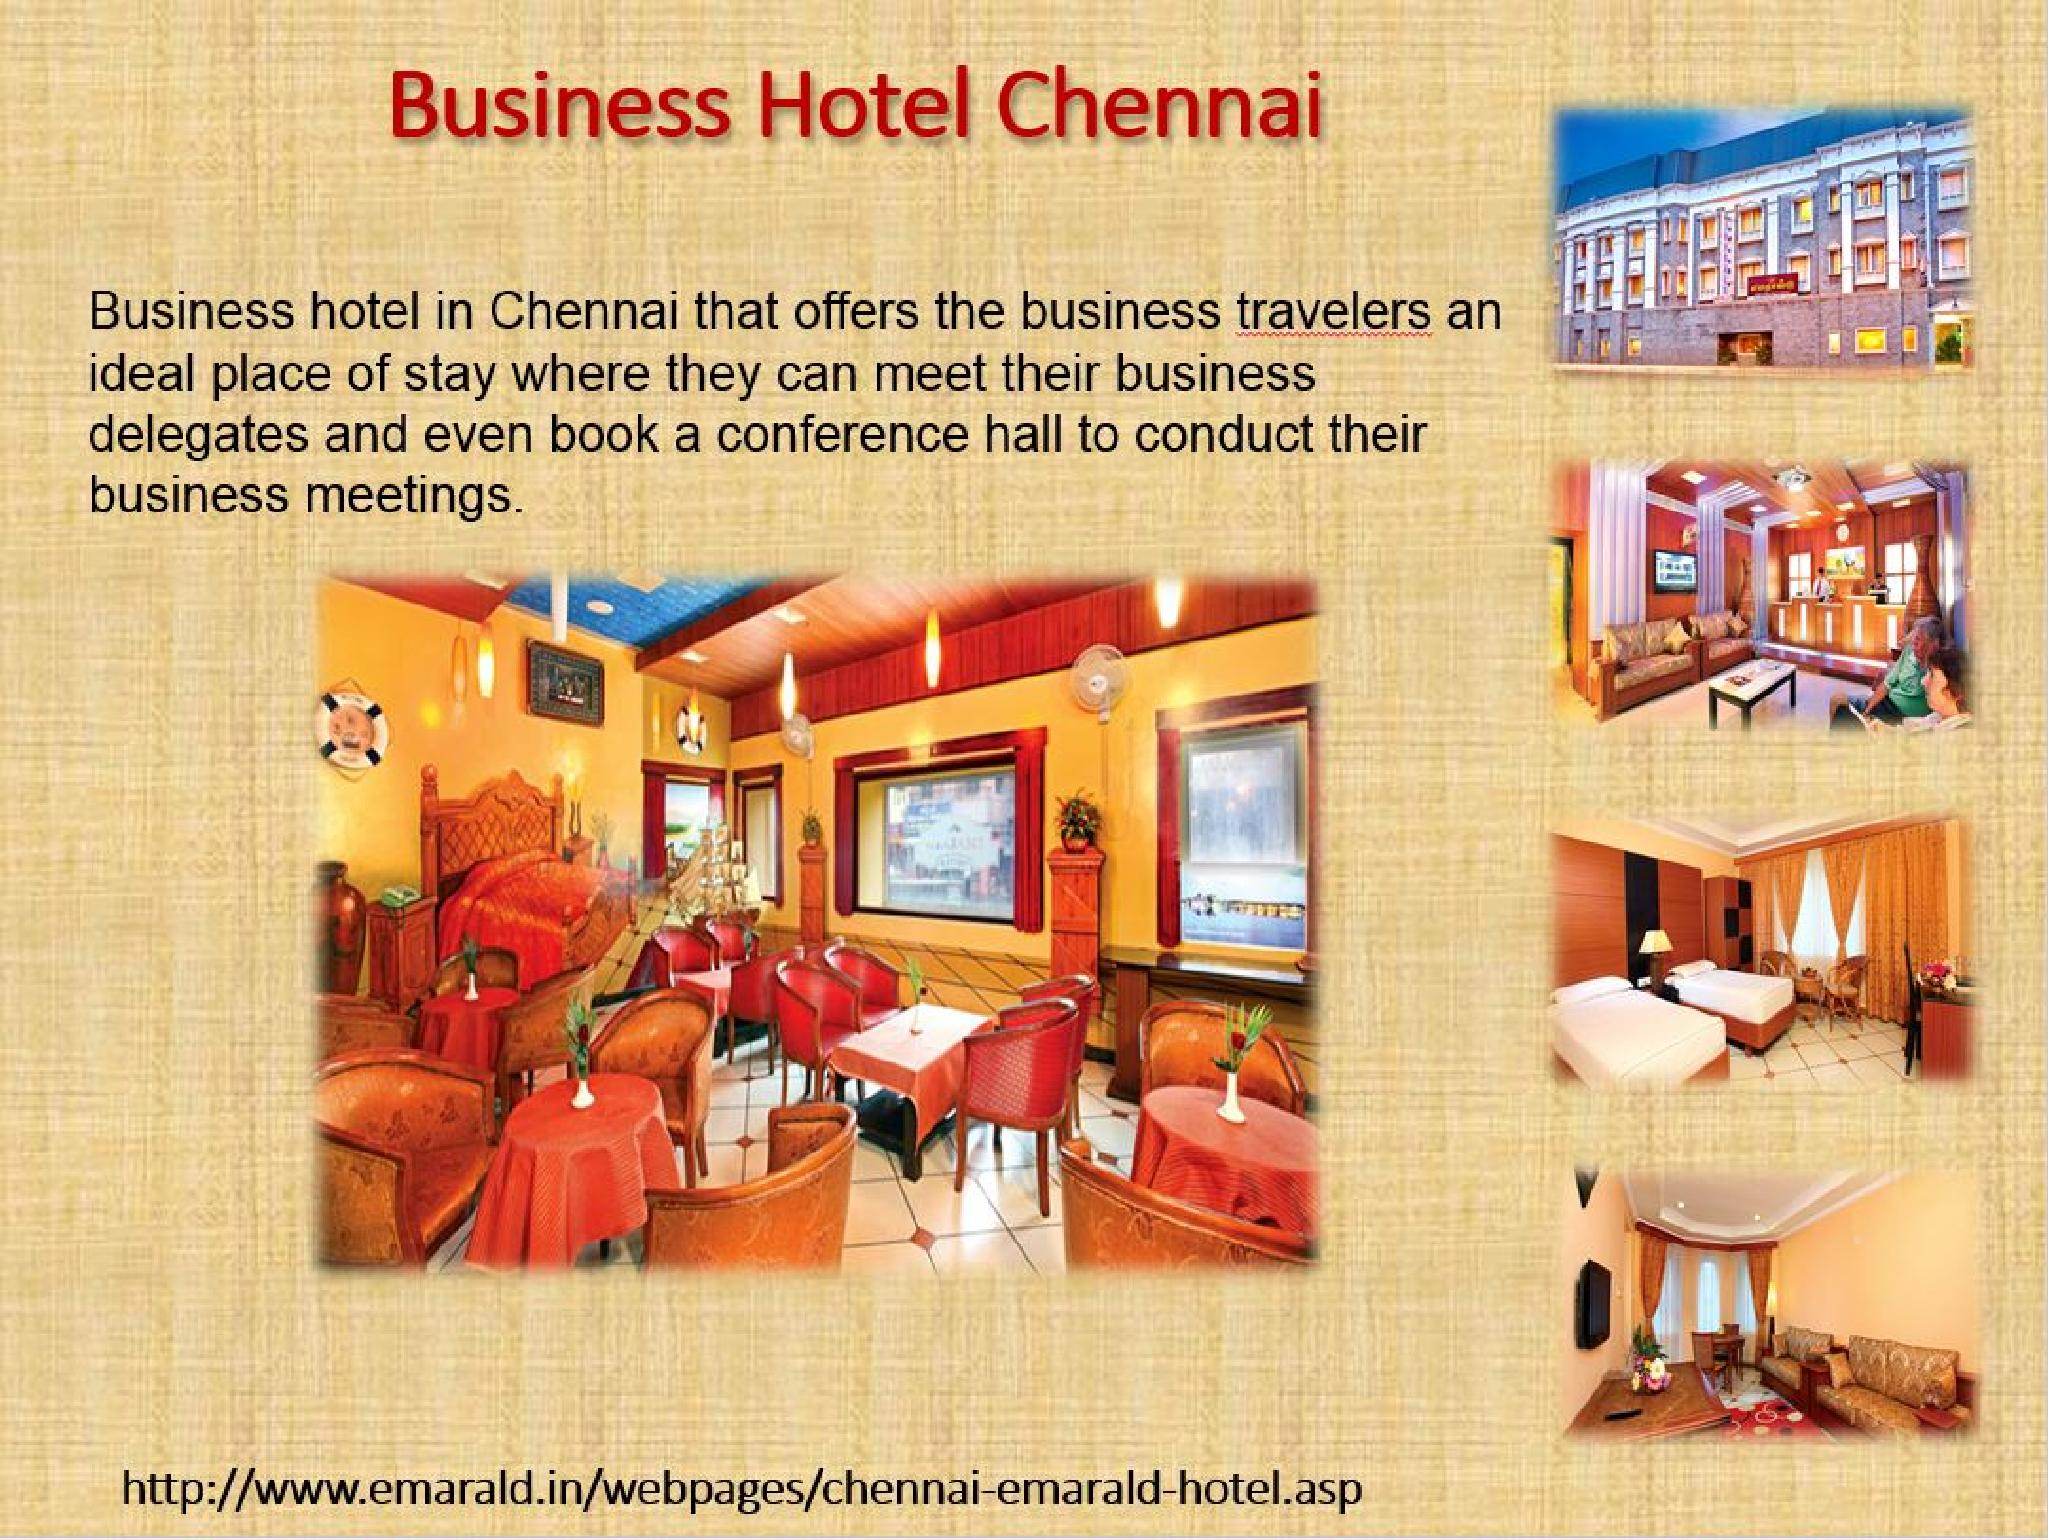 Business Hotels Chennai by robertbruse639